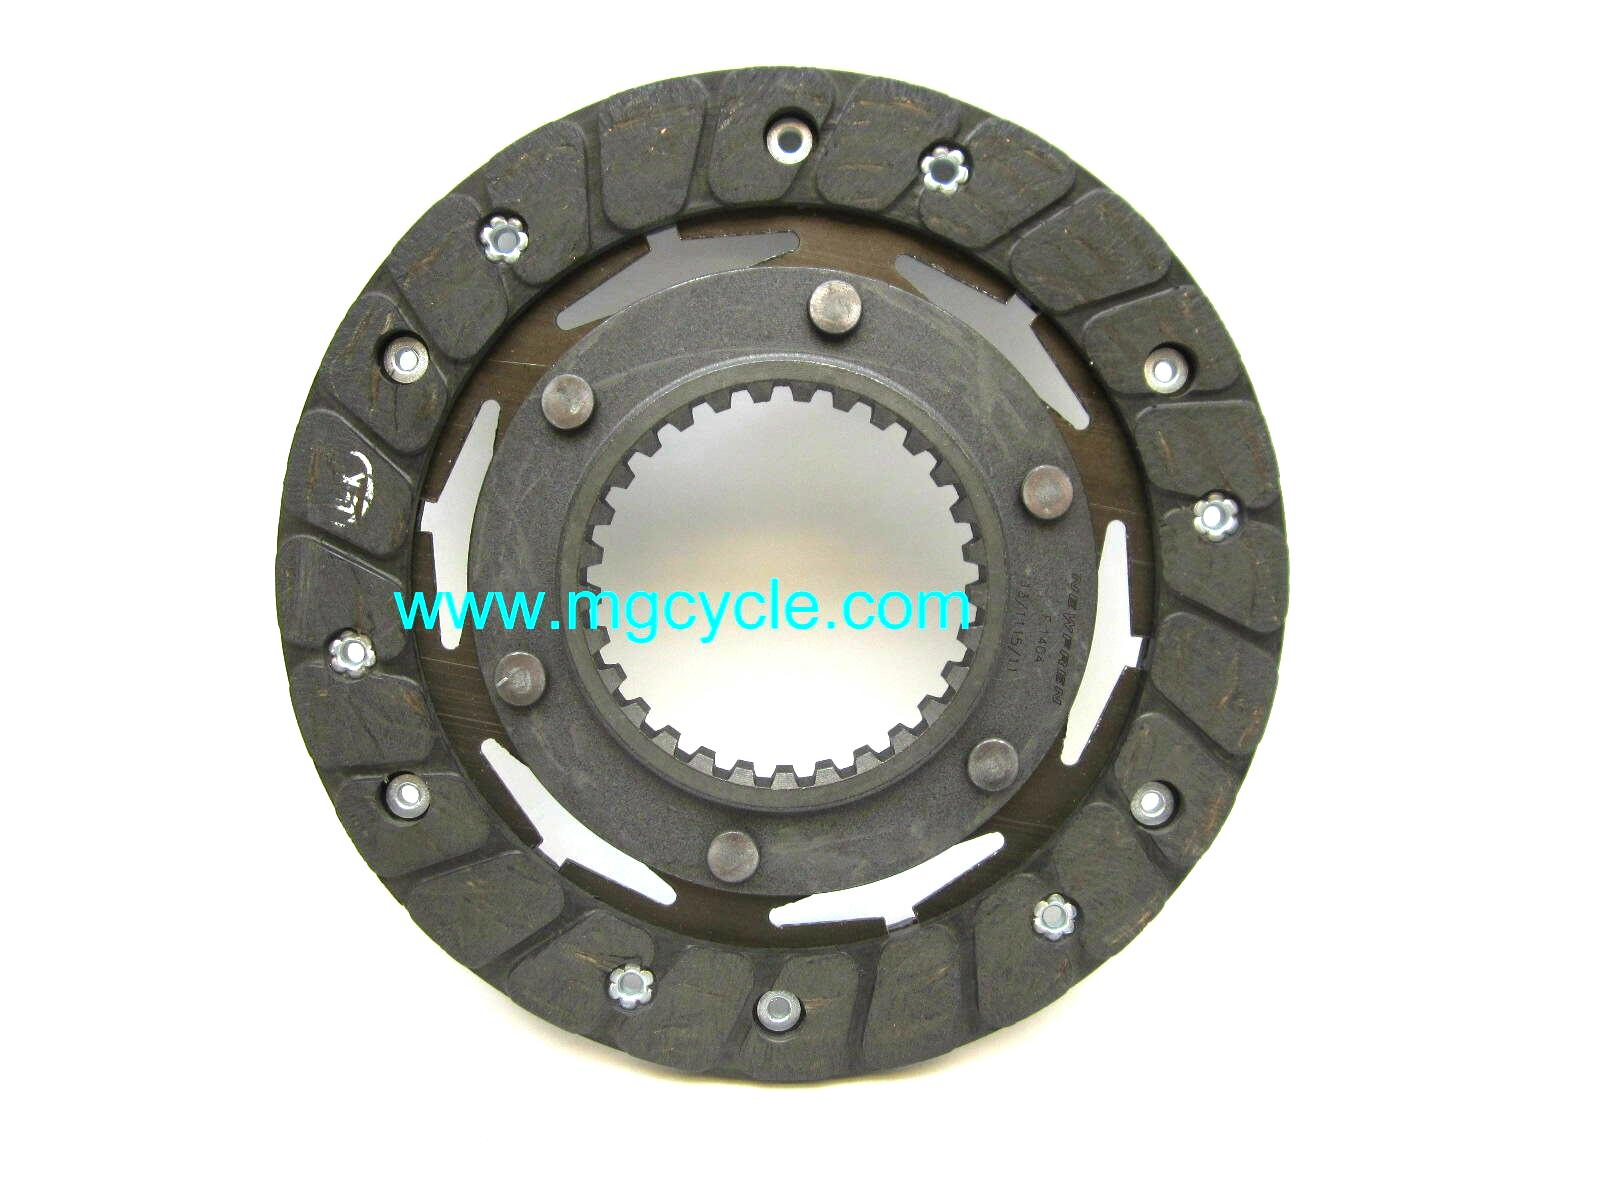 Newfren clutch friction plate for early shallow spline